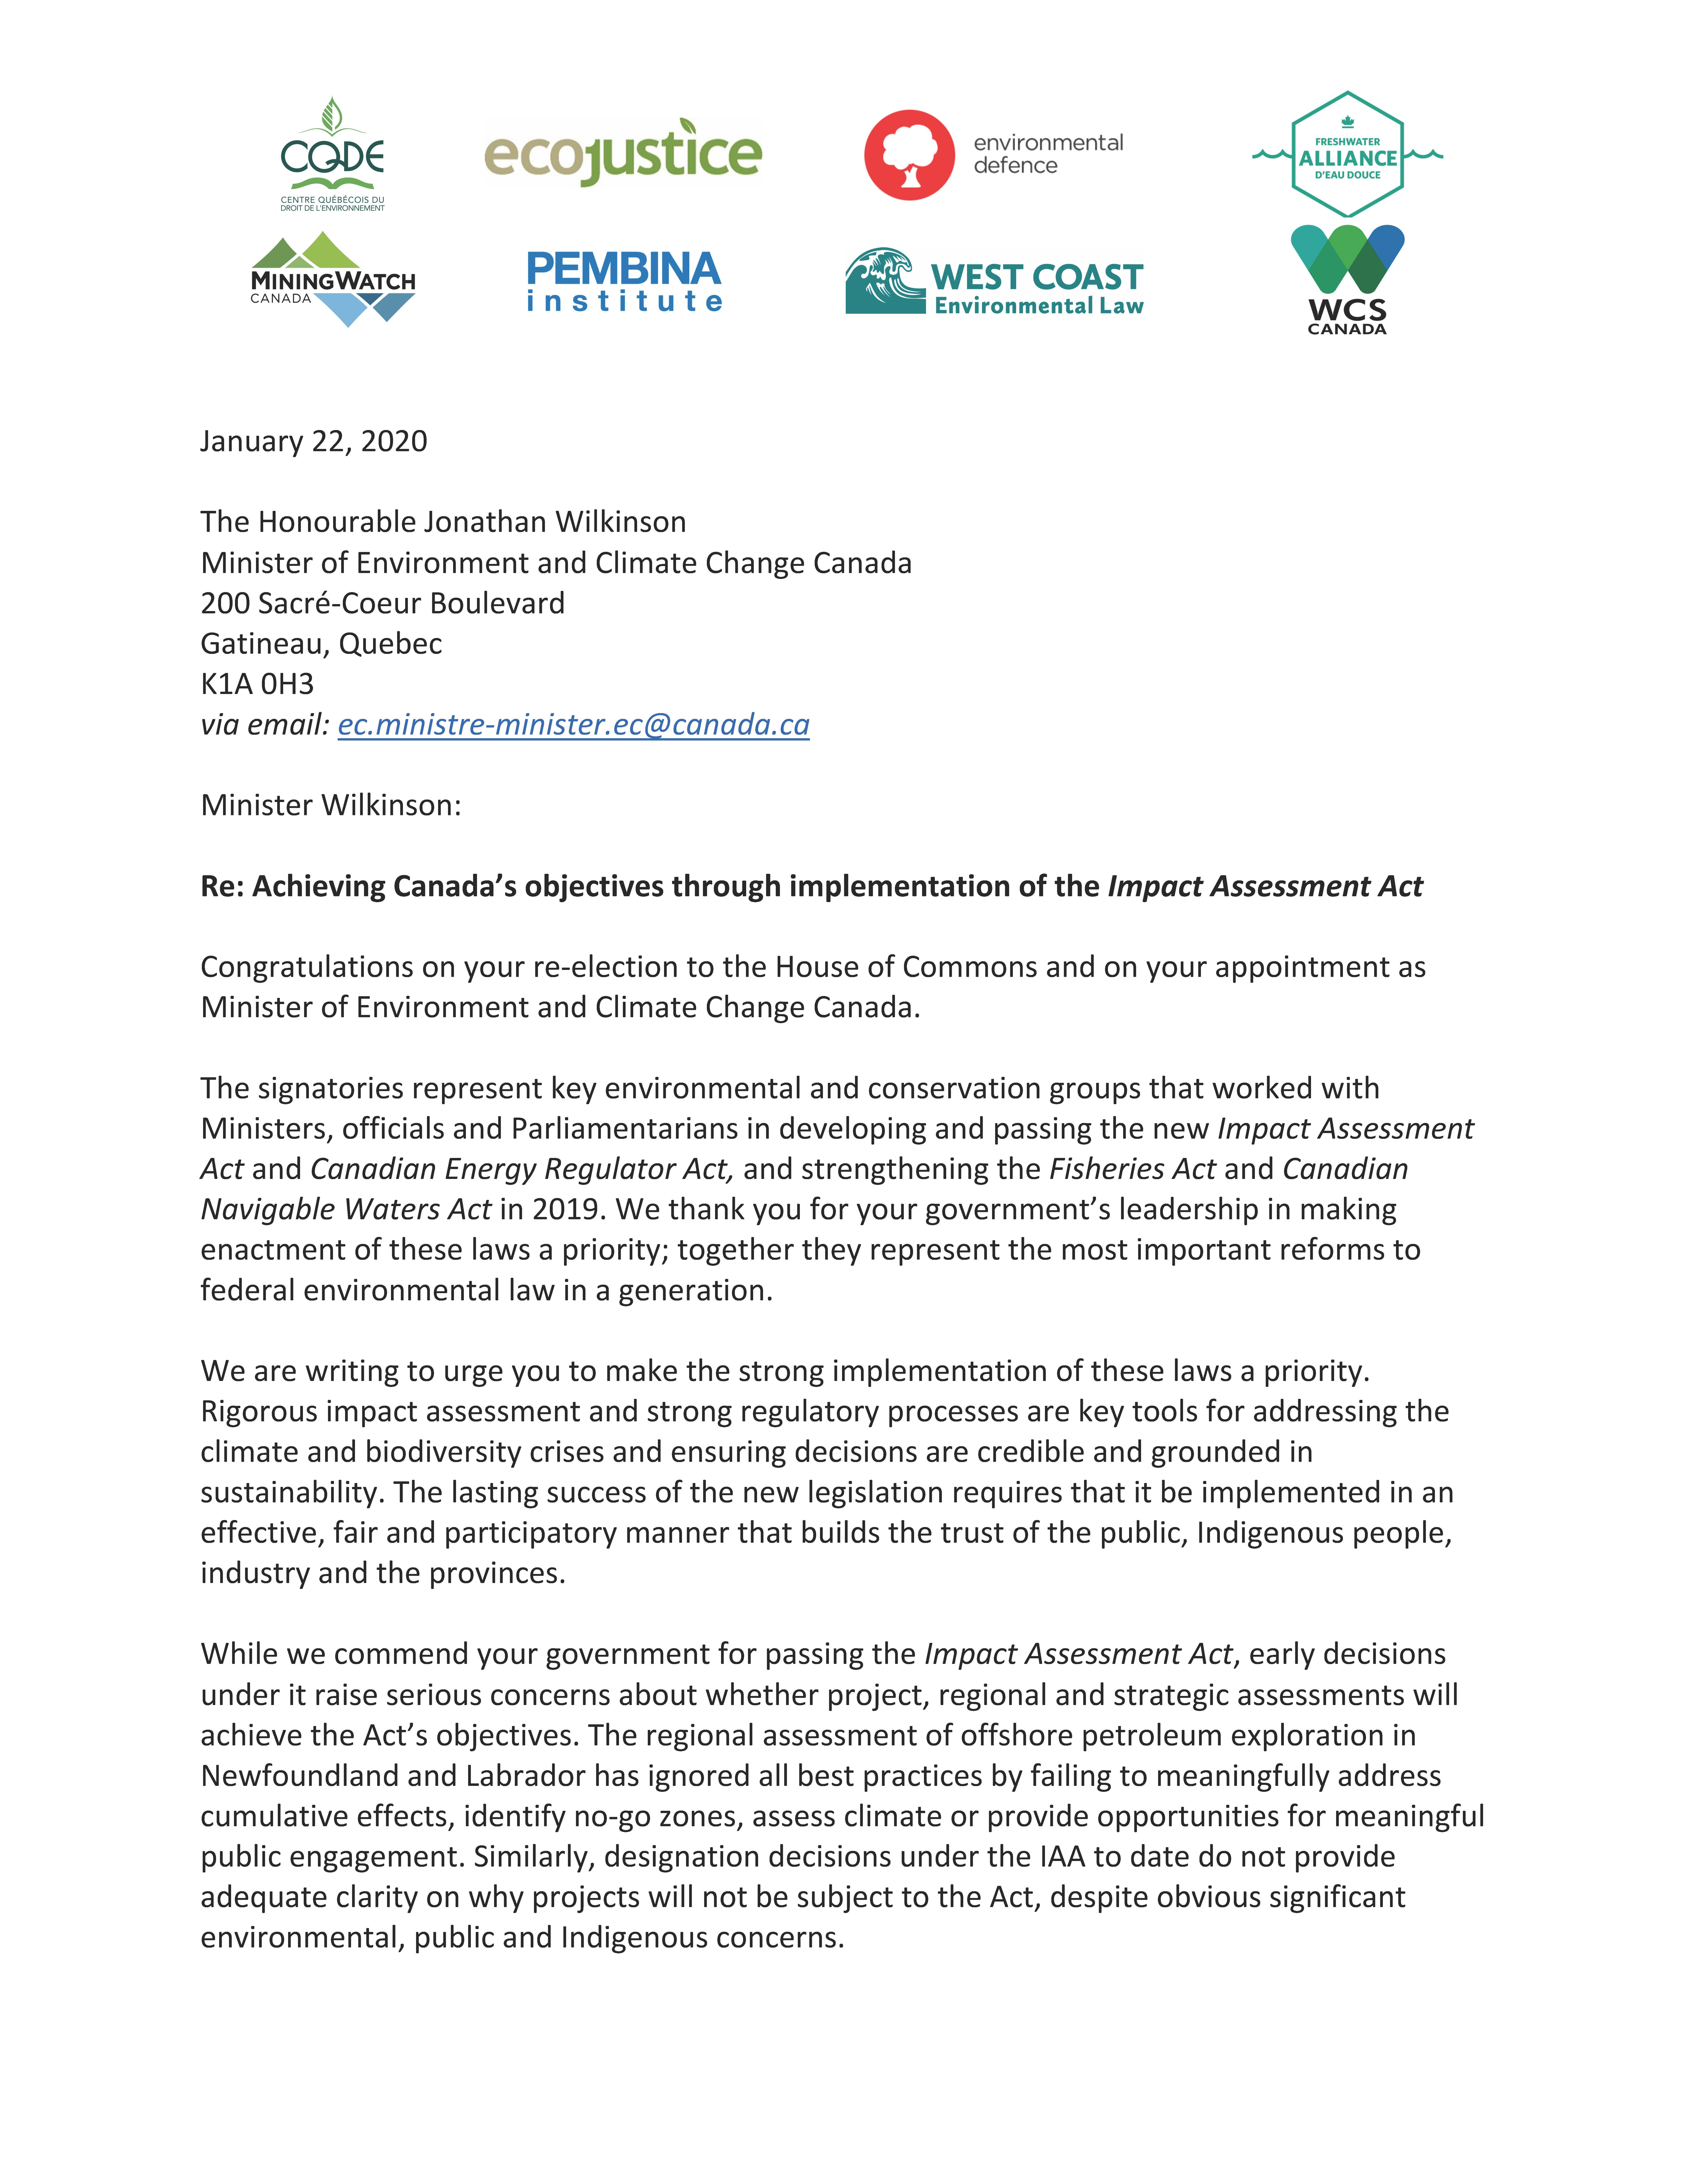 The cover of a joint letter to the Minister of the Environment and Climate Change